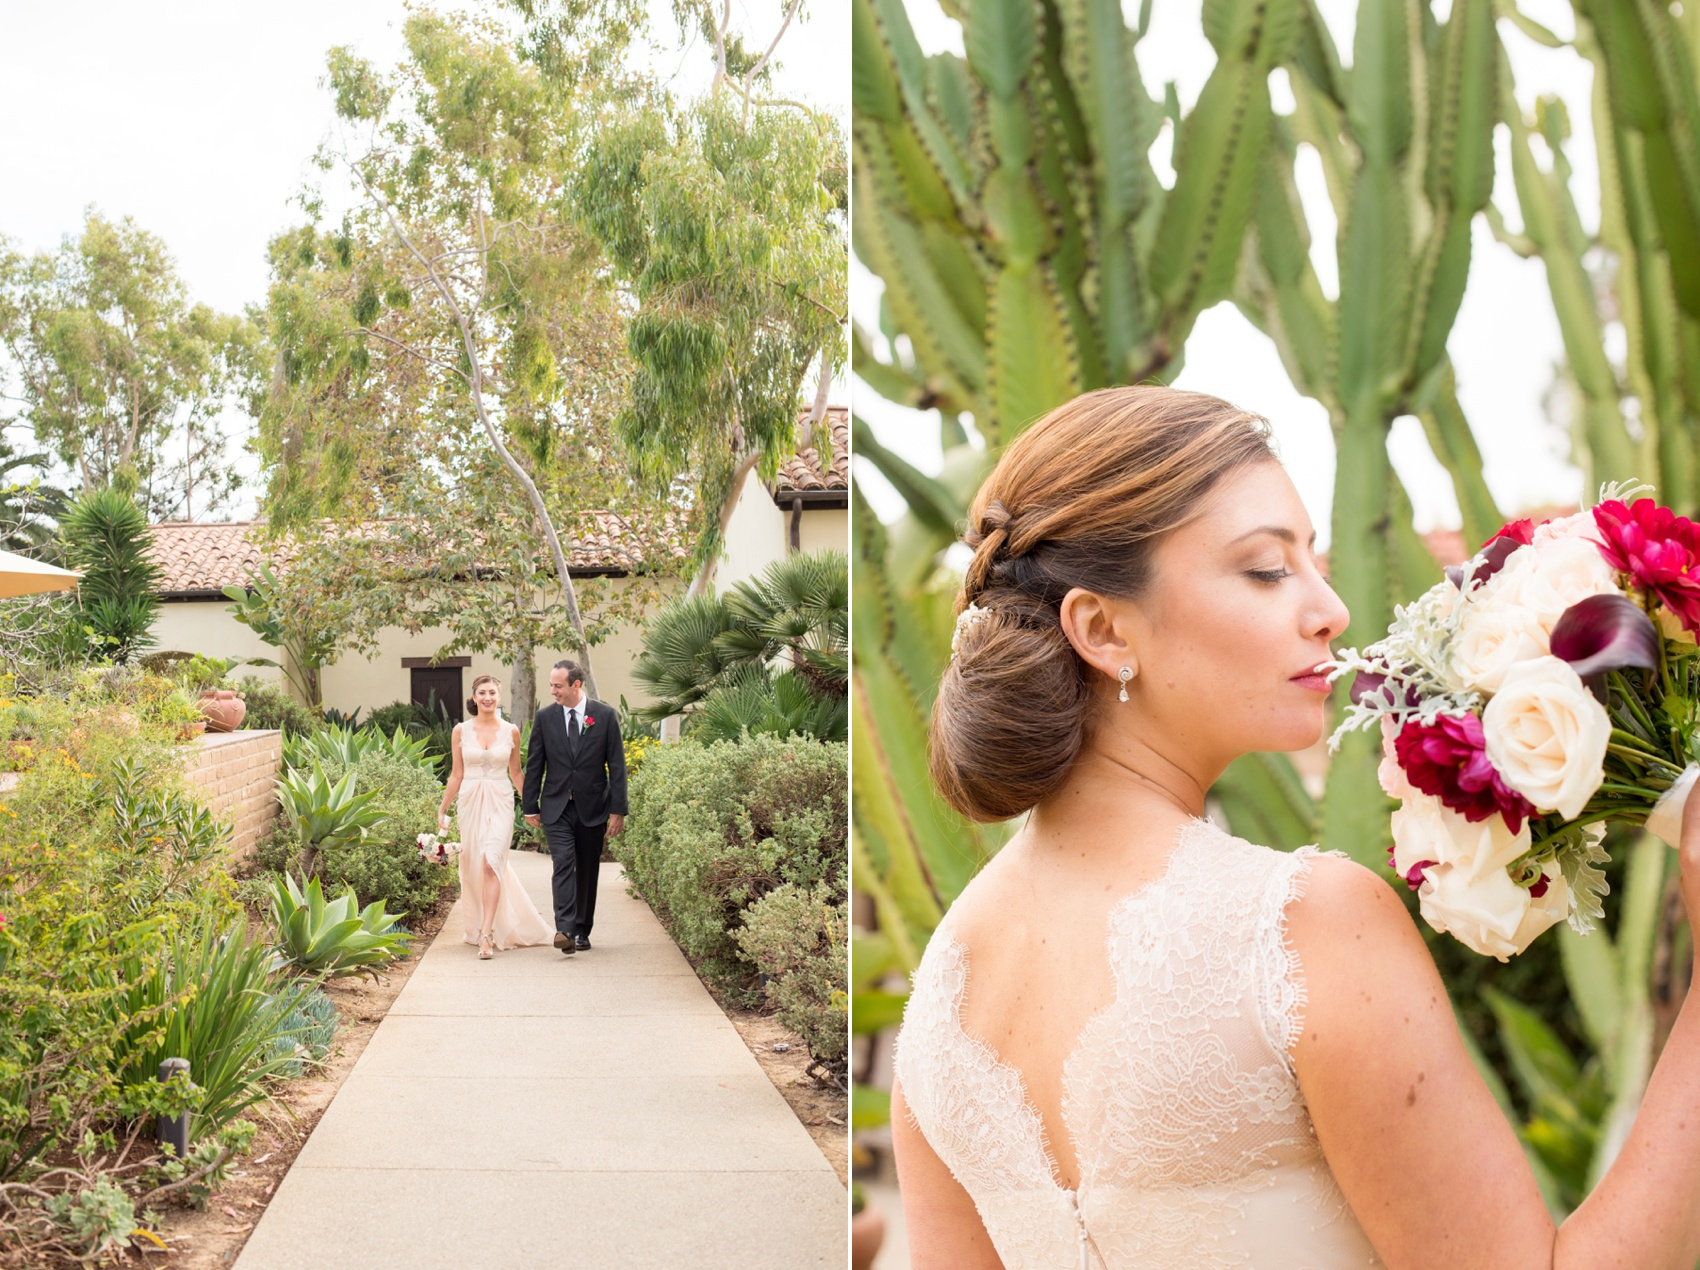 Estancia La Jolla wedding photography by Mikkel Paige Photography. Tropical wedding, California coast. Bride and groom photos.